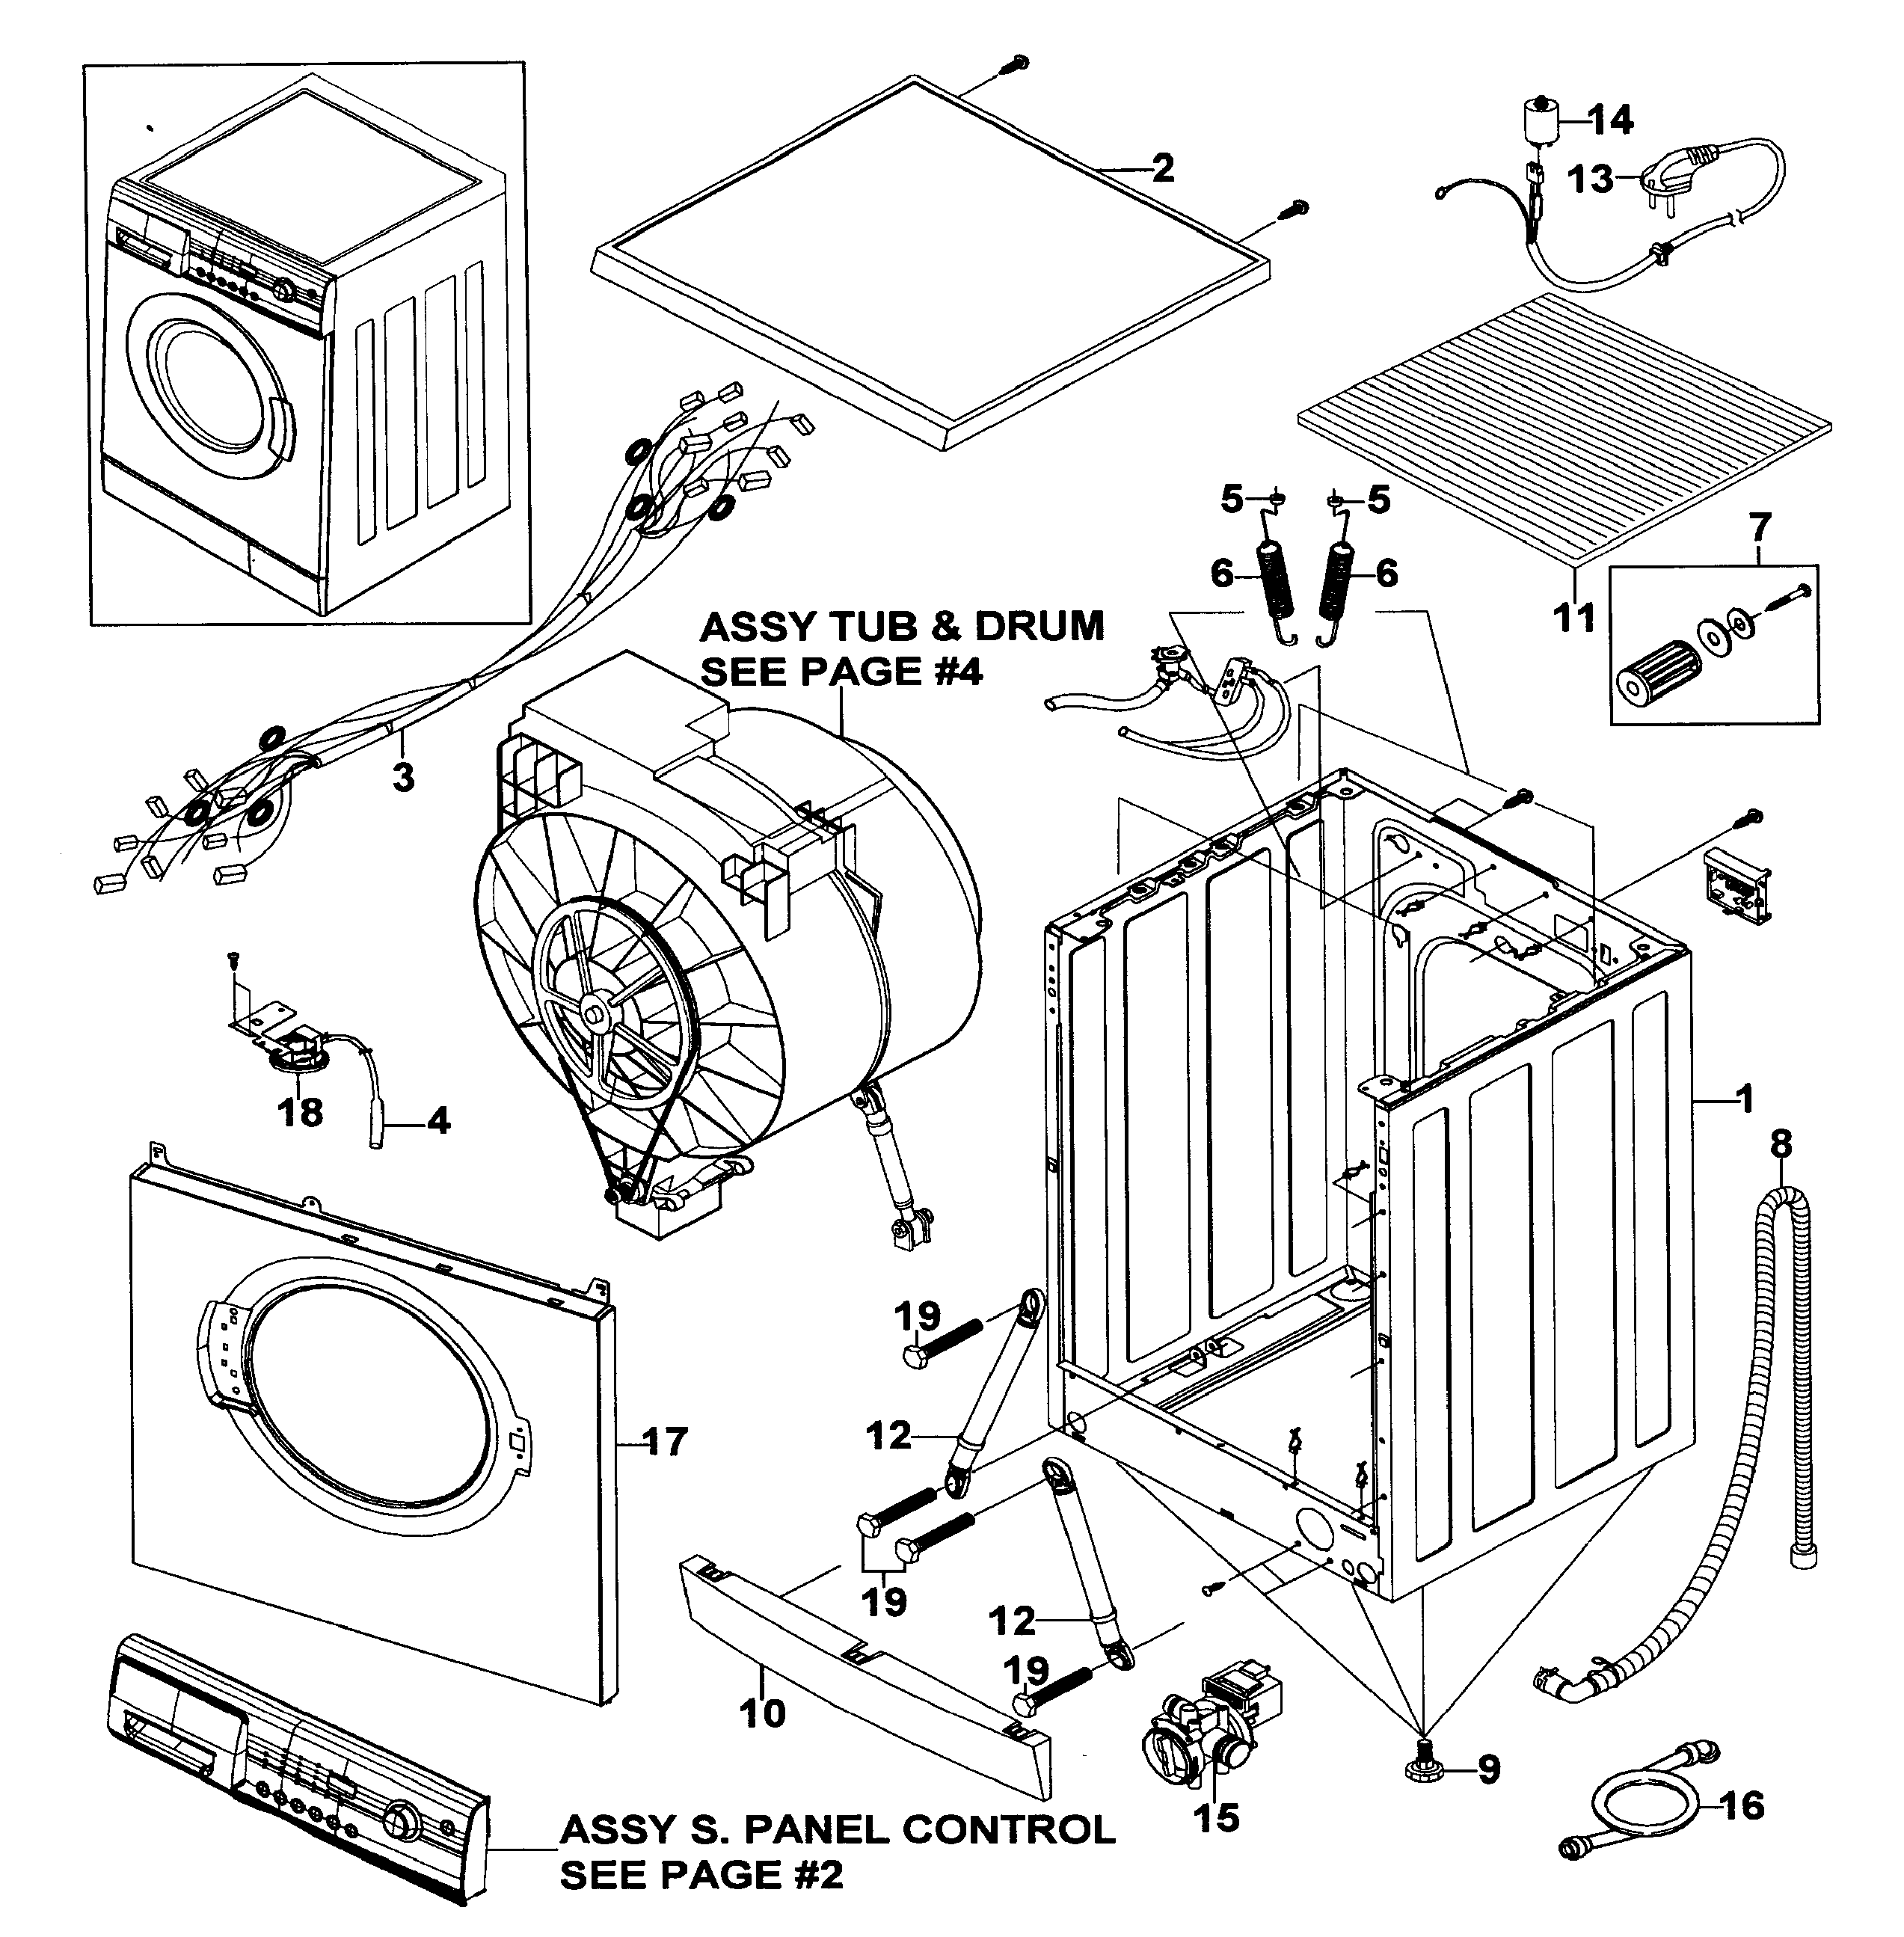 Samsung Front Load Washer Parts Enchanting Samsung Front Load